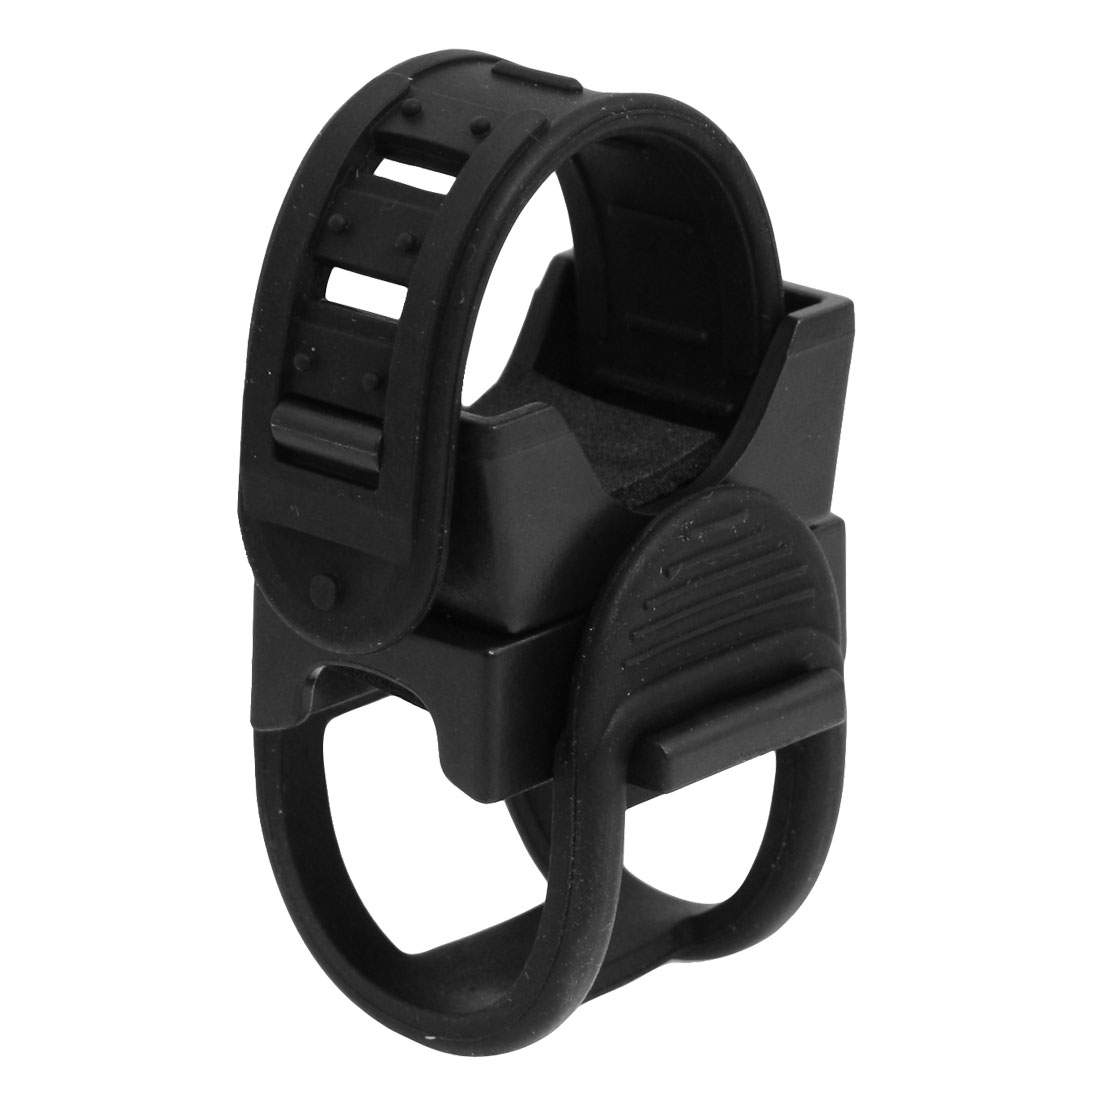 Black Plastic Rubber Adjustable Flashlight Holder for Bicycle Bike